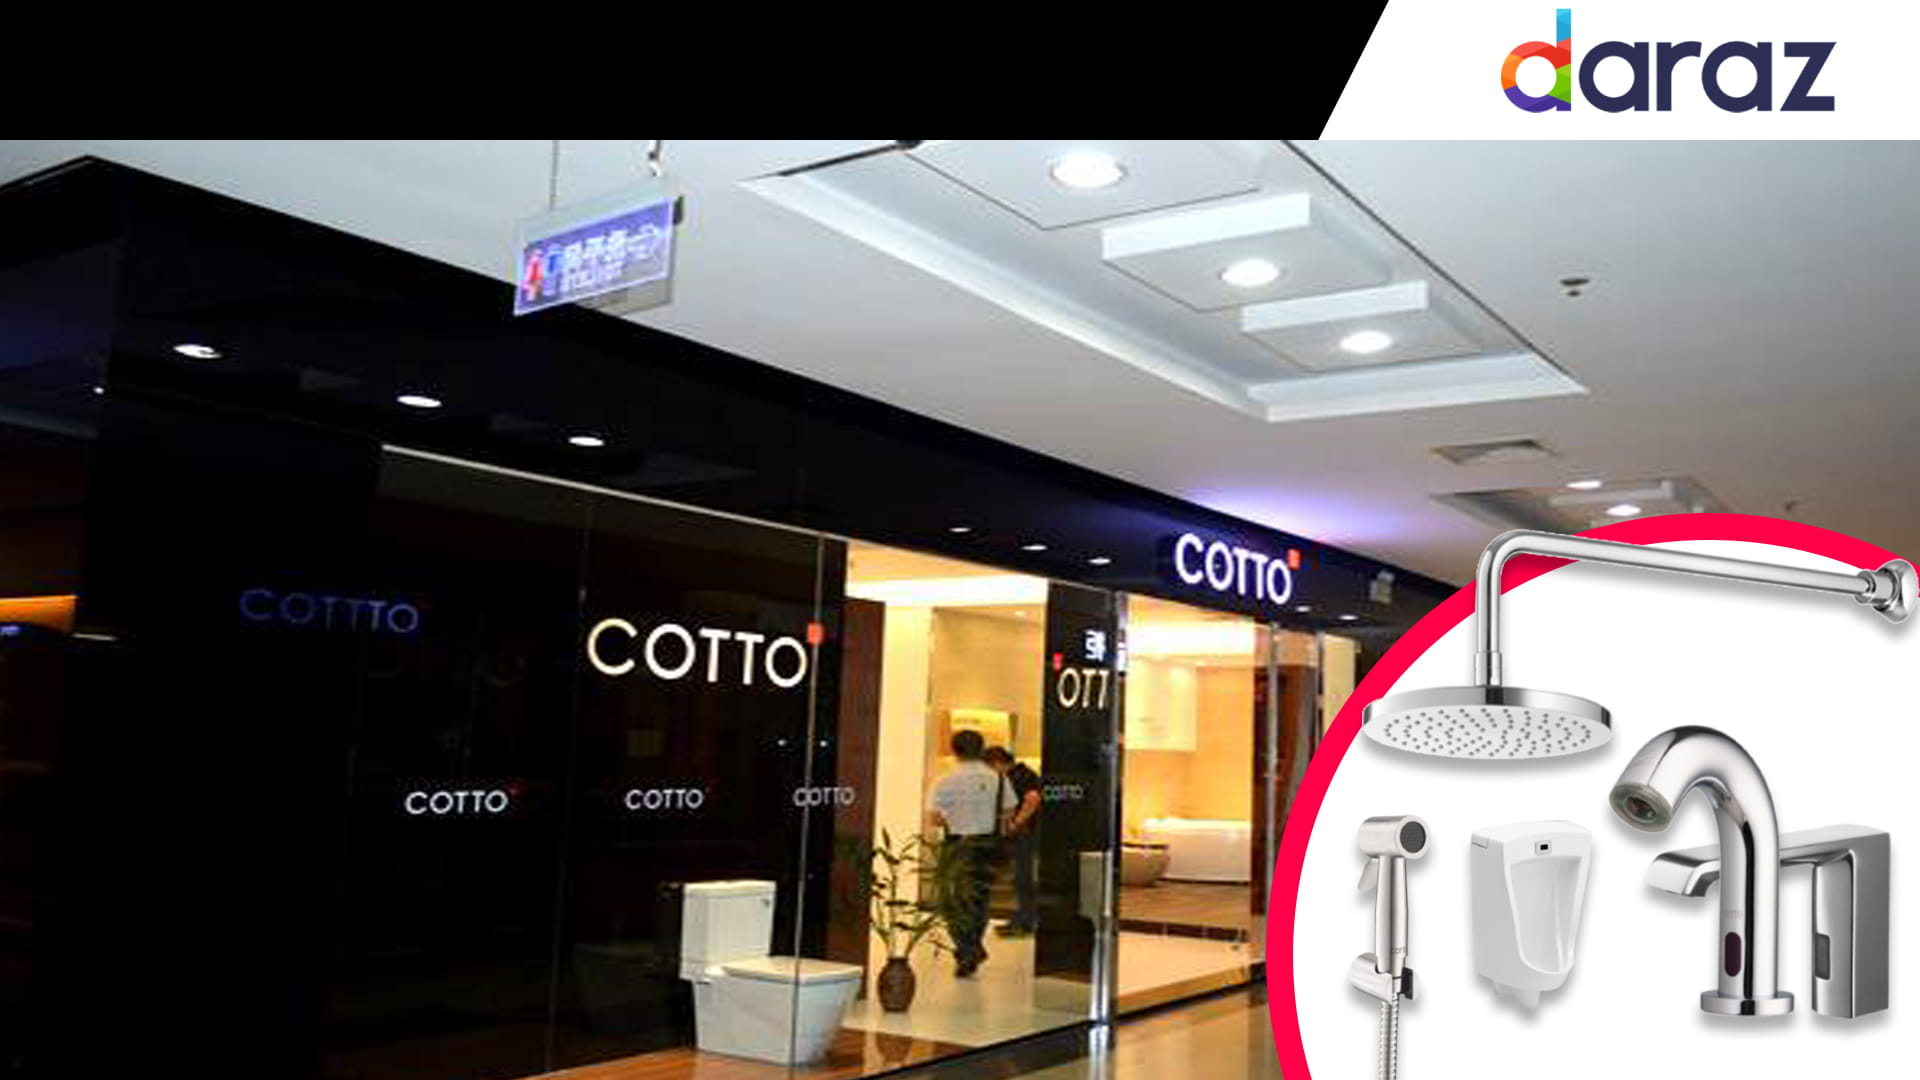 Cotto Sanitary Ware on Daraz Bangladesh - resize